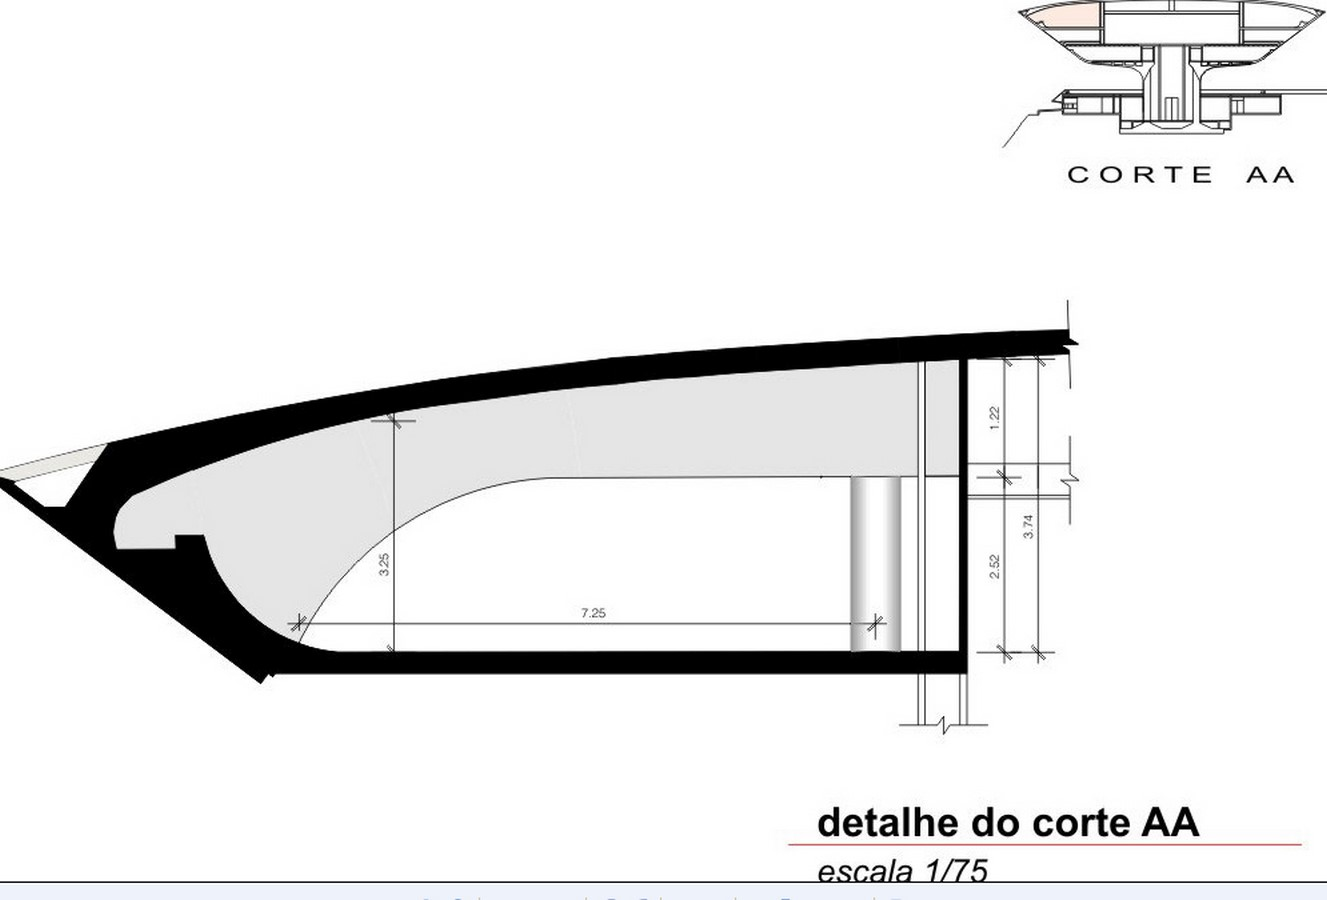 Niterói Contemporary Art Museum by Oscar Niemeyer: Iconic Saucer-Shaped Structure Sheet15